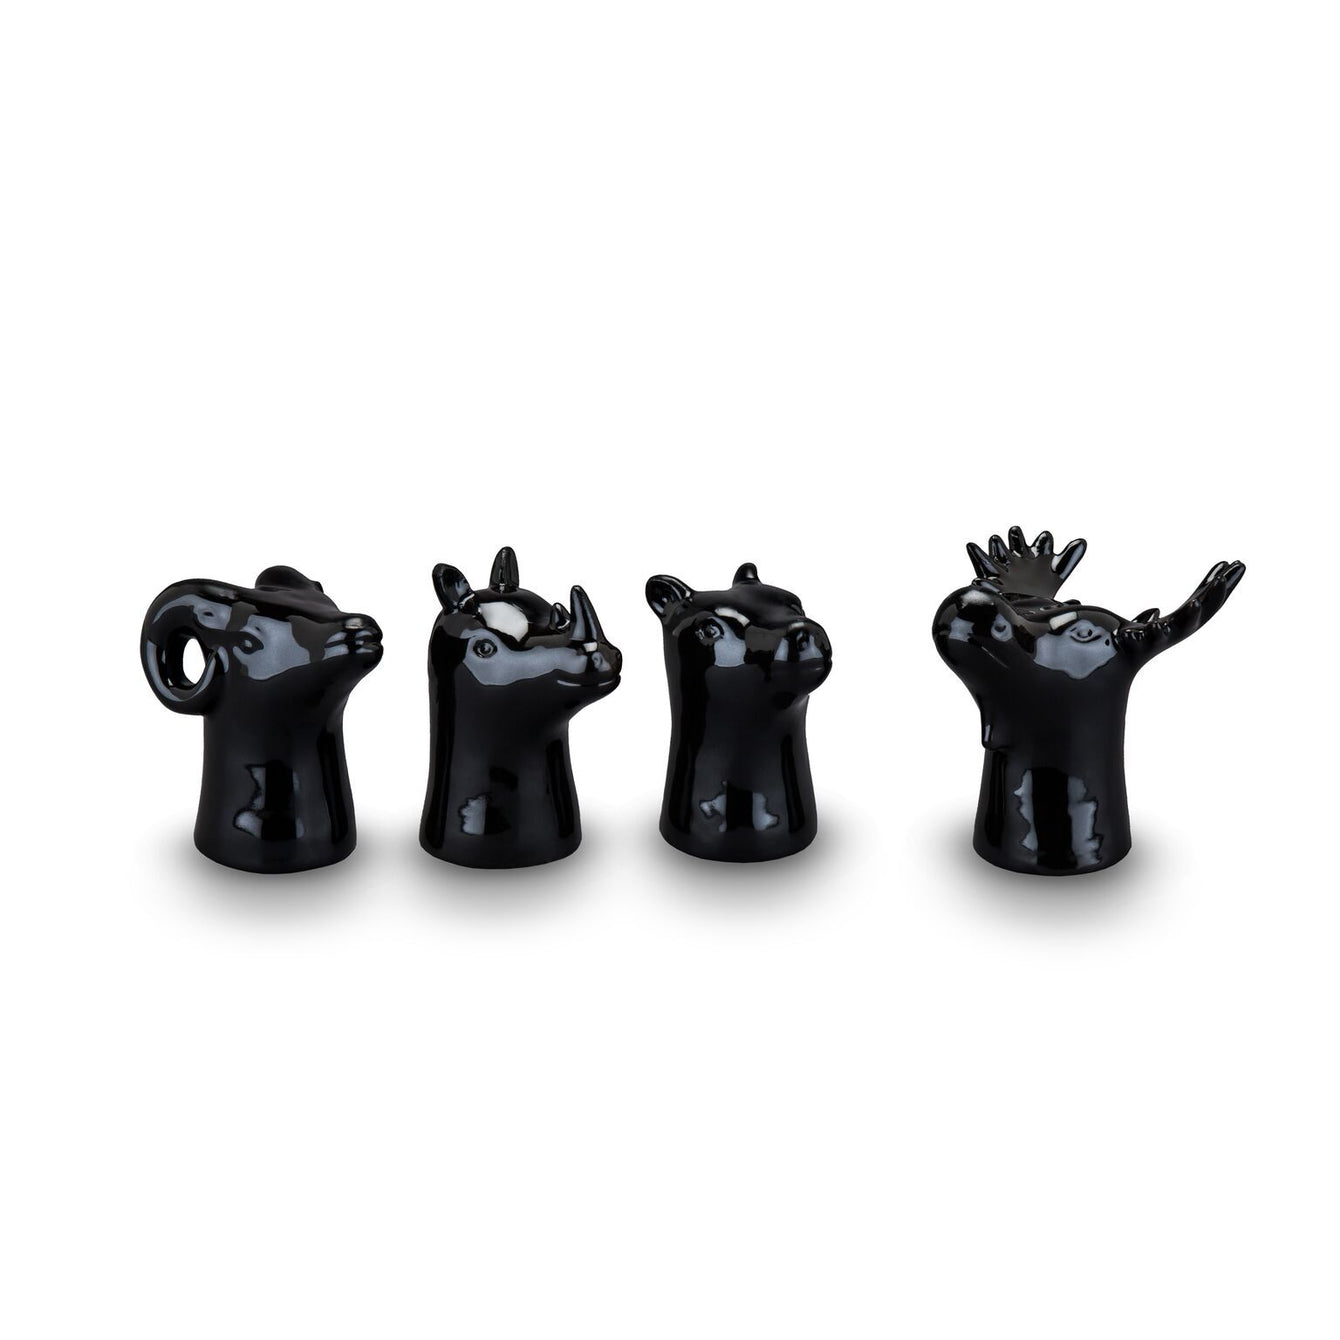 Animal Head Shot Glasses-Home - Entertaining - Shot Glasses Sets-FOSTER AND RYE-Peccadilly